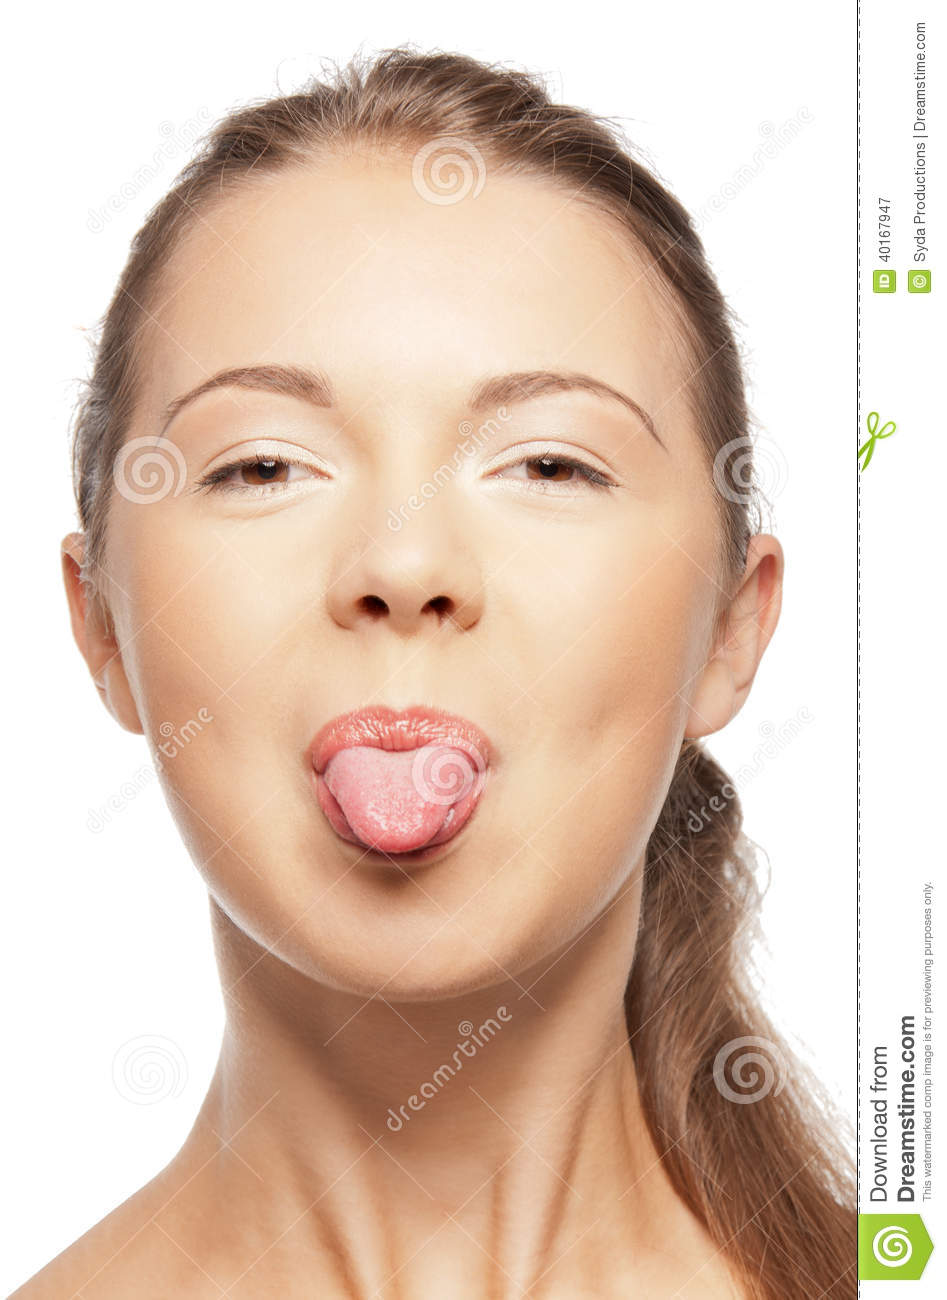 Teenage Girl Sticking Out Her Tongue Stock Photo Image